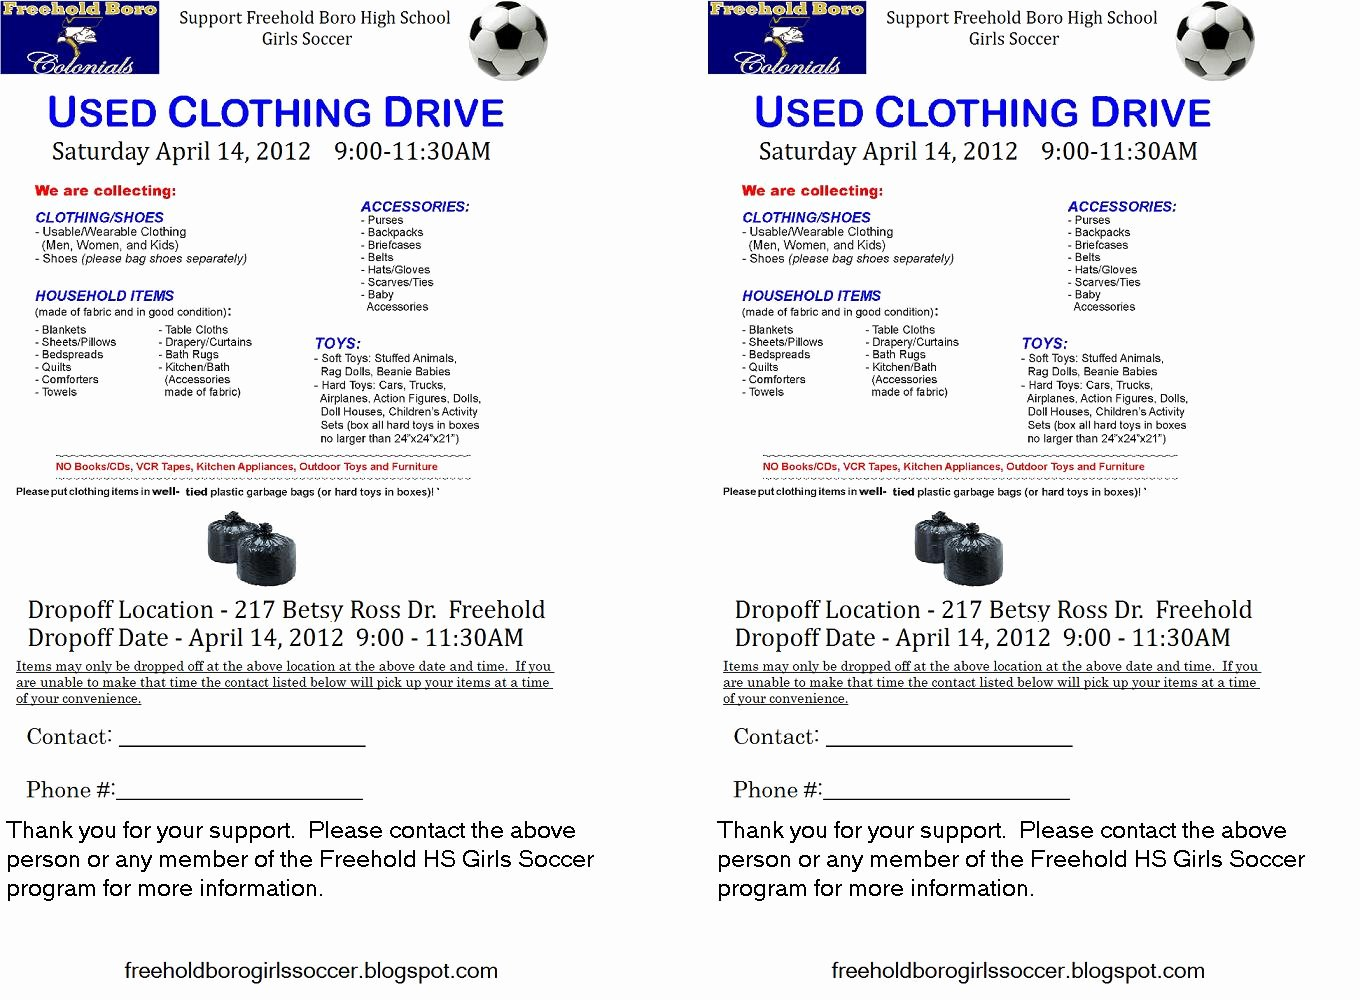 Clothing Drive Flyer Template Lovely Freehold Boro Hs Girls soccer March 2012